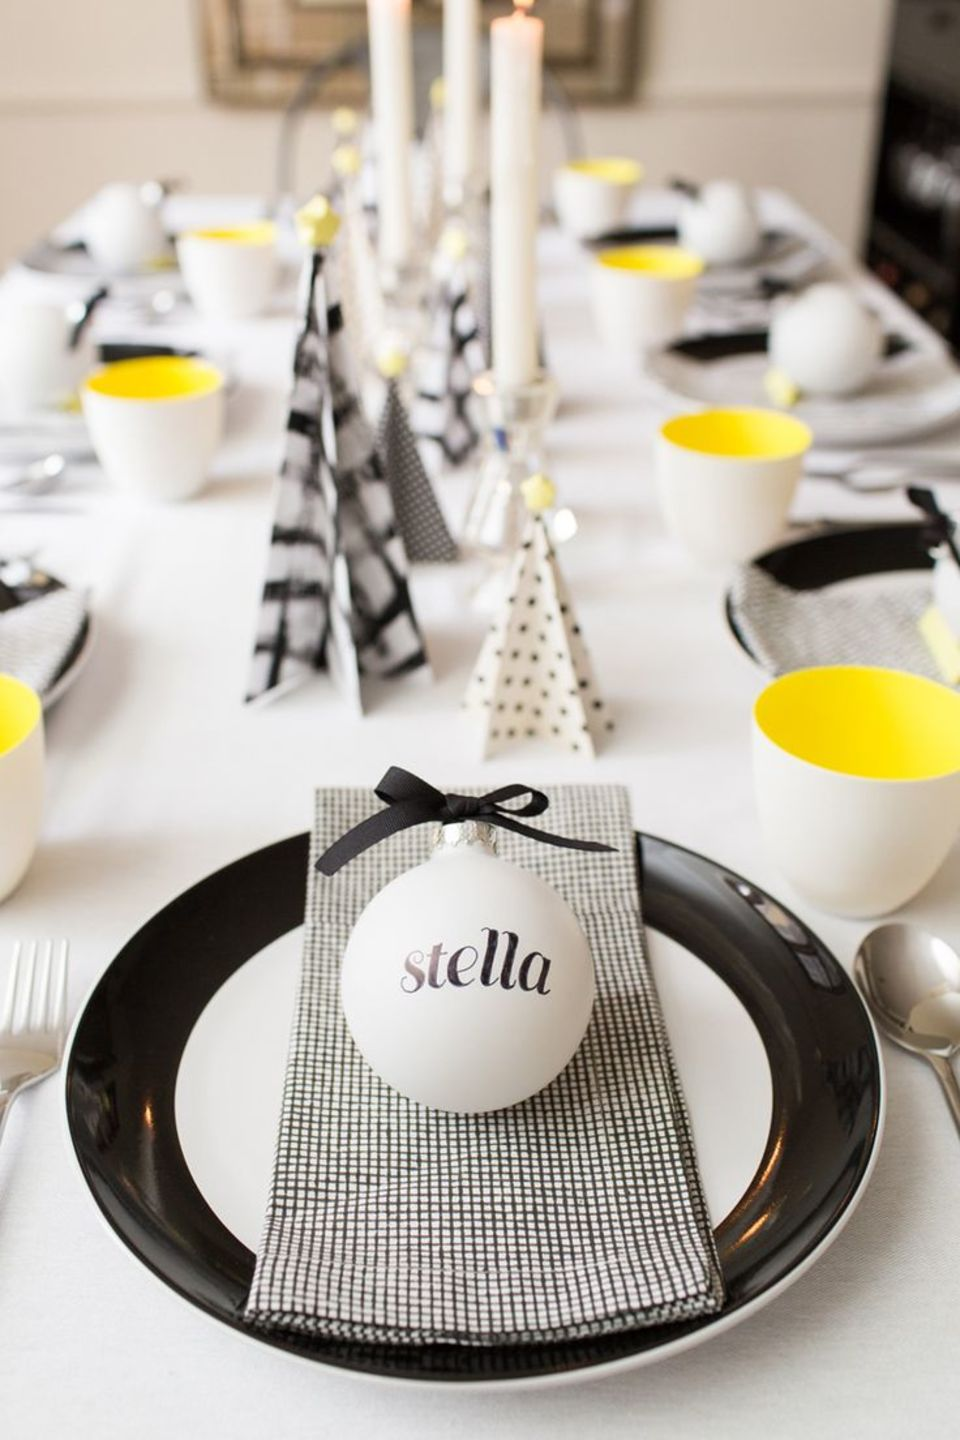 15 Christmas Table Settings to Win You Best Host images 0